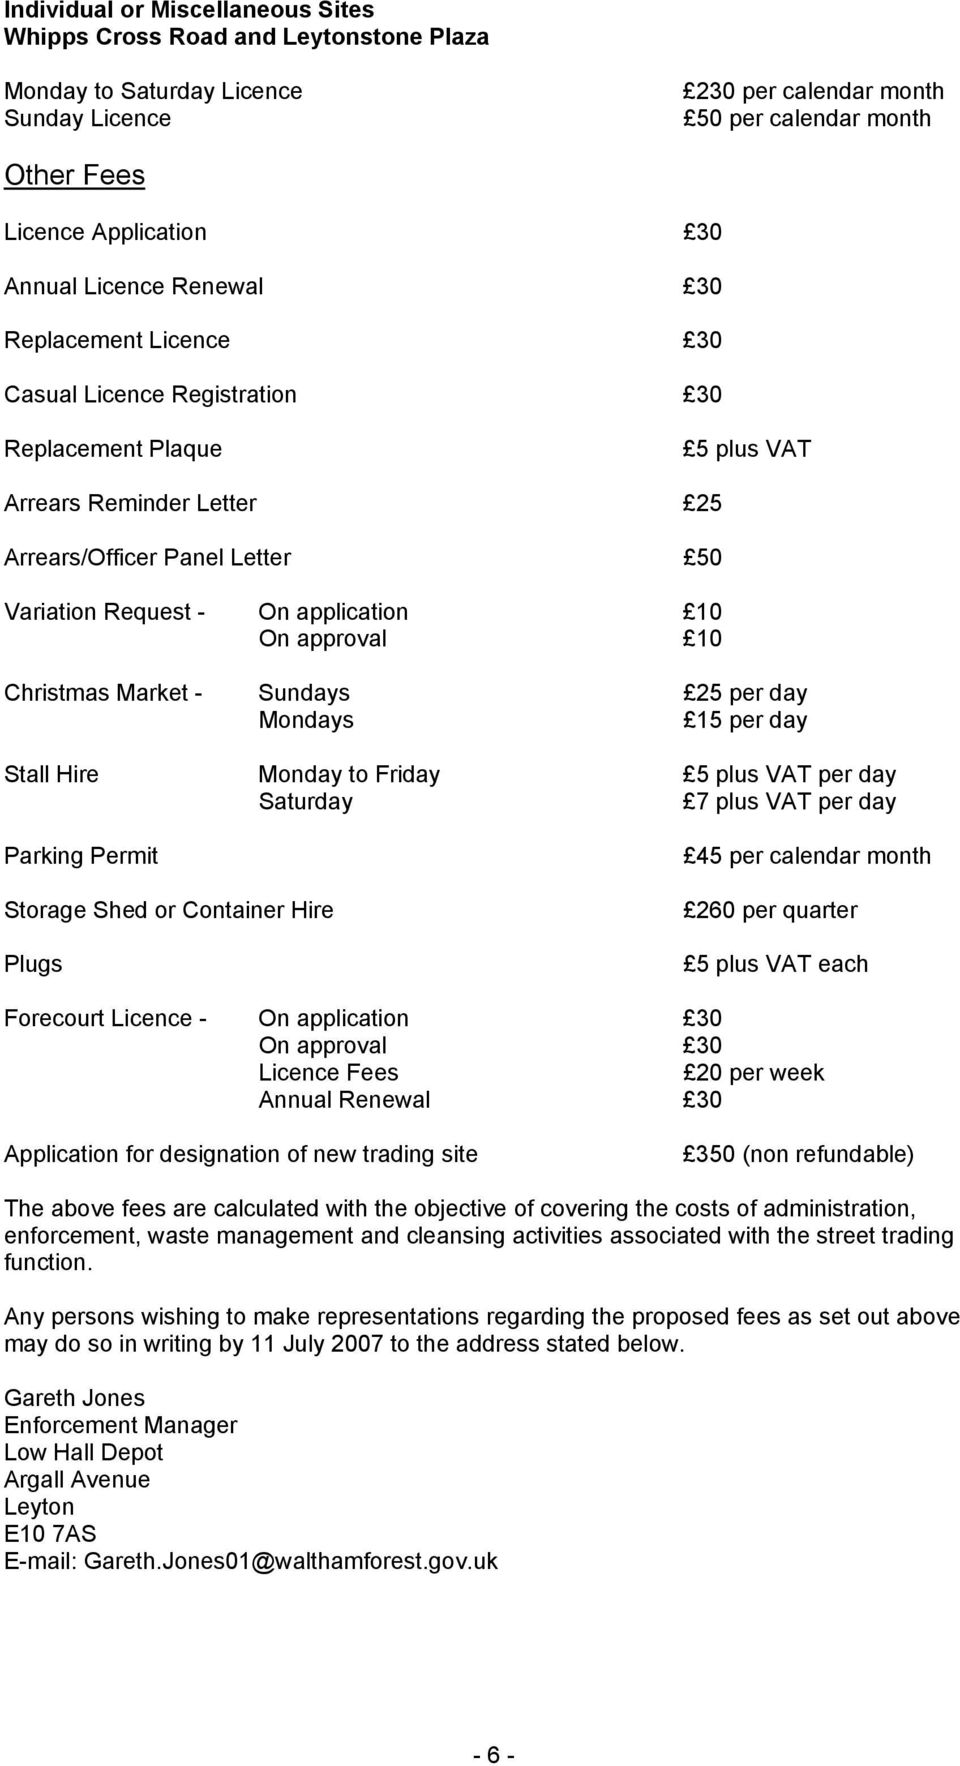 application 10 On approval 10 Christmas Market - Sundays 25 per day Mondays 15 per day Stall Hire Monday to Friday 5 plus VAT per day Saturday 7 plus VAT per day Parking Permit Storage Shed or